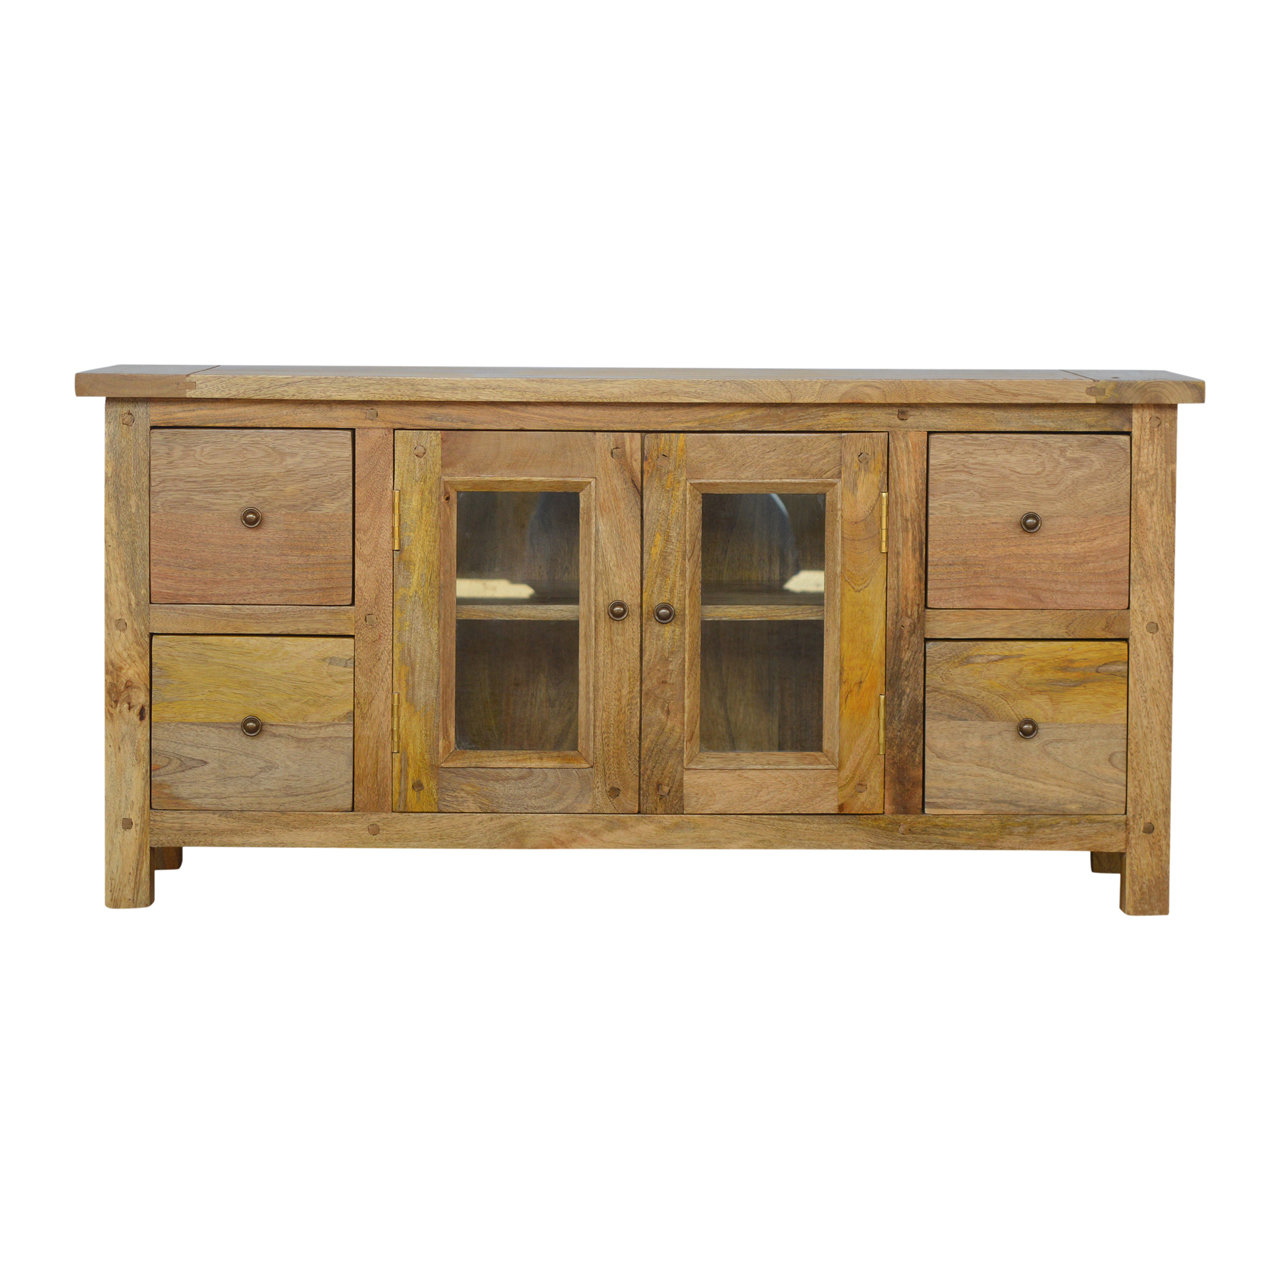 IN154 Country Style Media Unit with 4 Drawers and 2 Glazed Doors